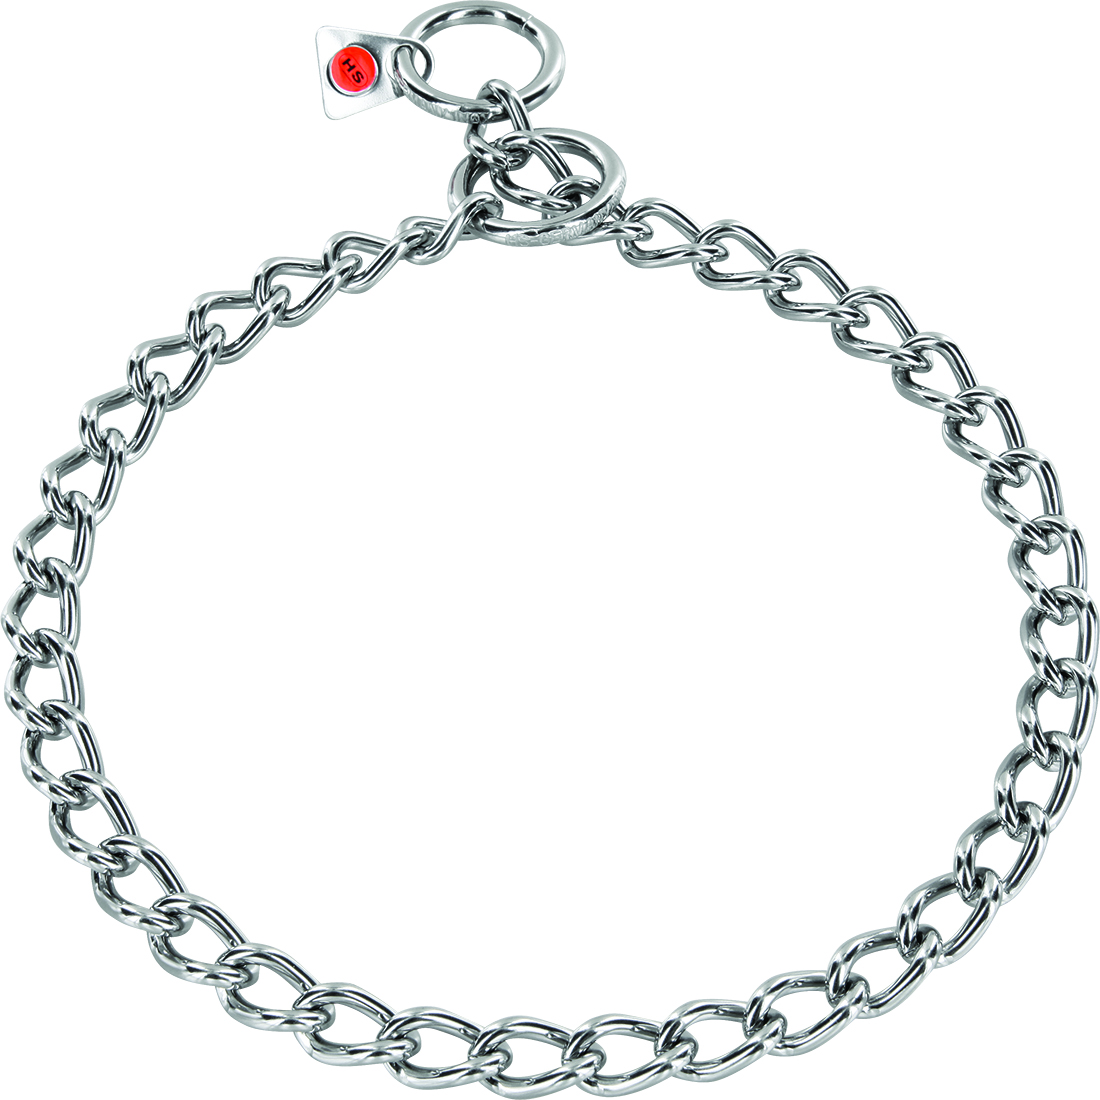 Herm. Sprenger® Stainless Steel Dog Chain Training Collar